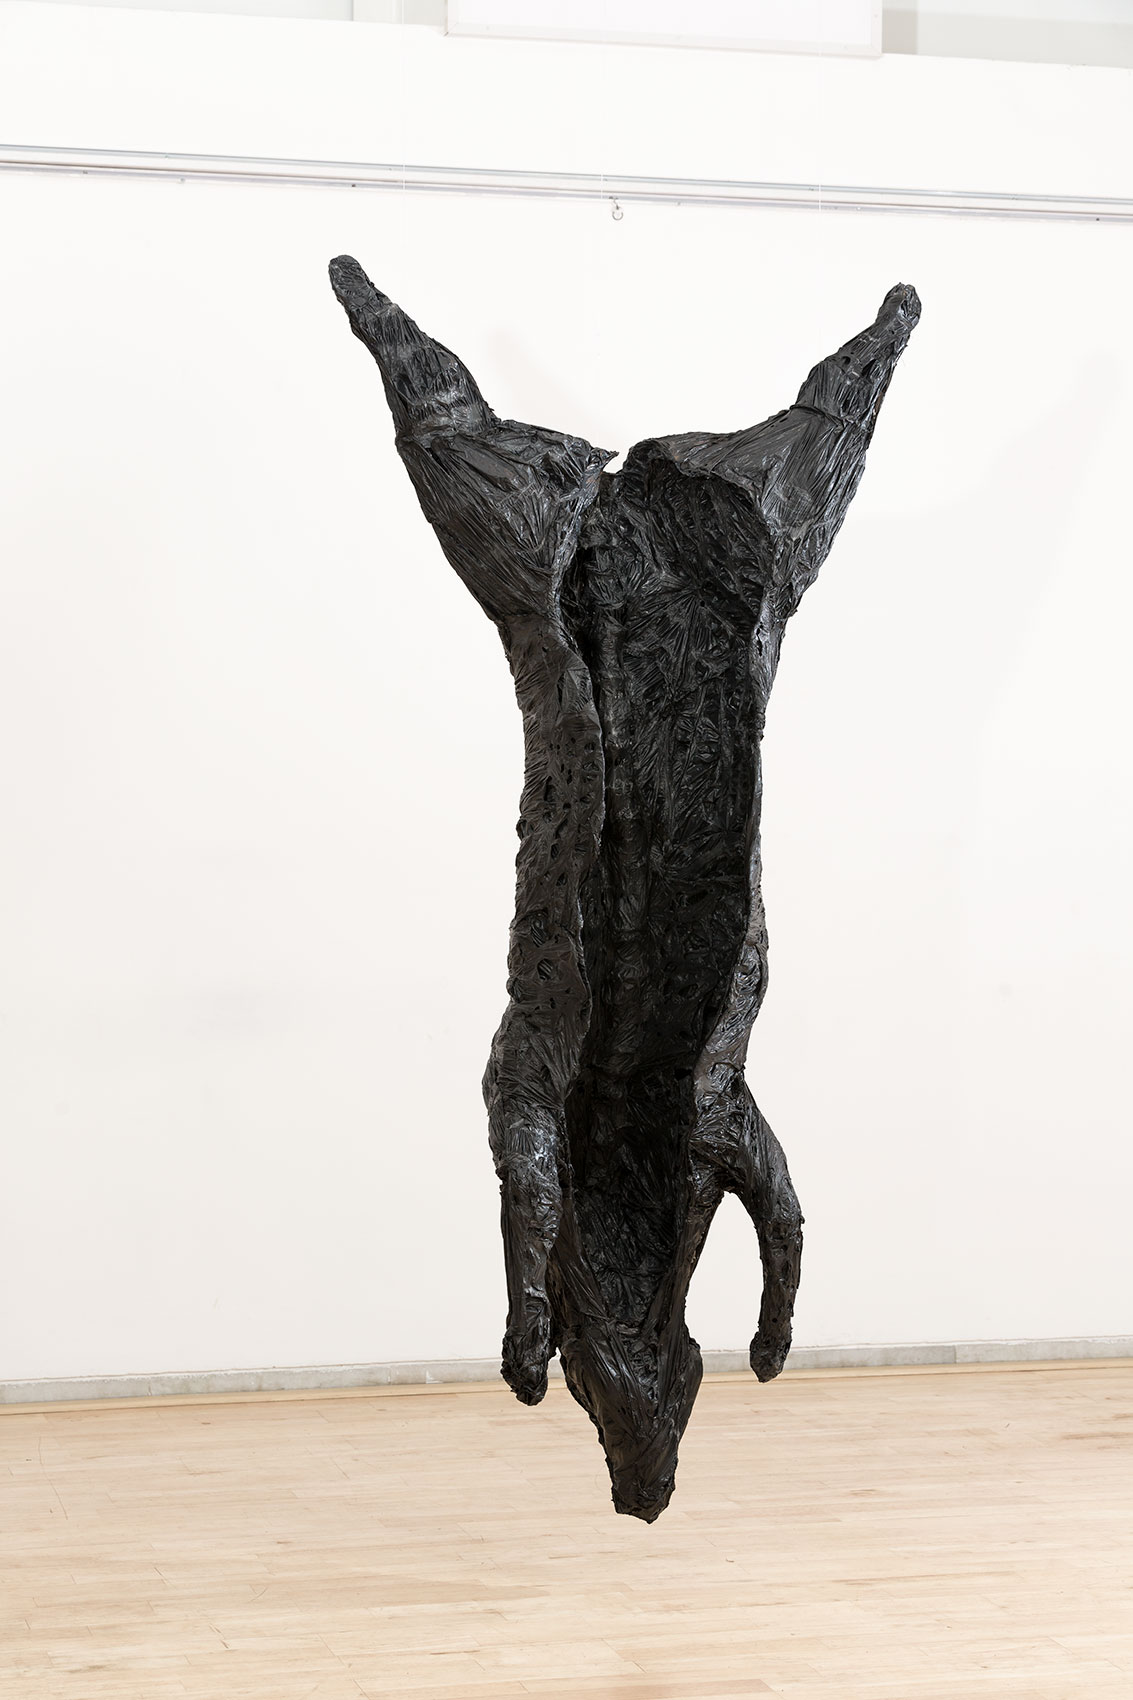 Francesco Petruccelli, sculpture, Bangalore